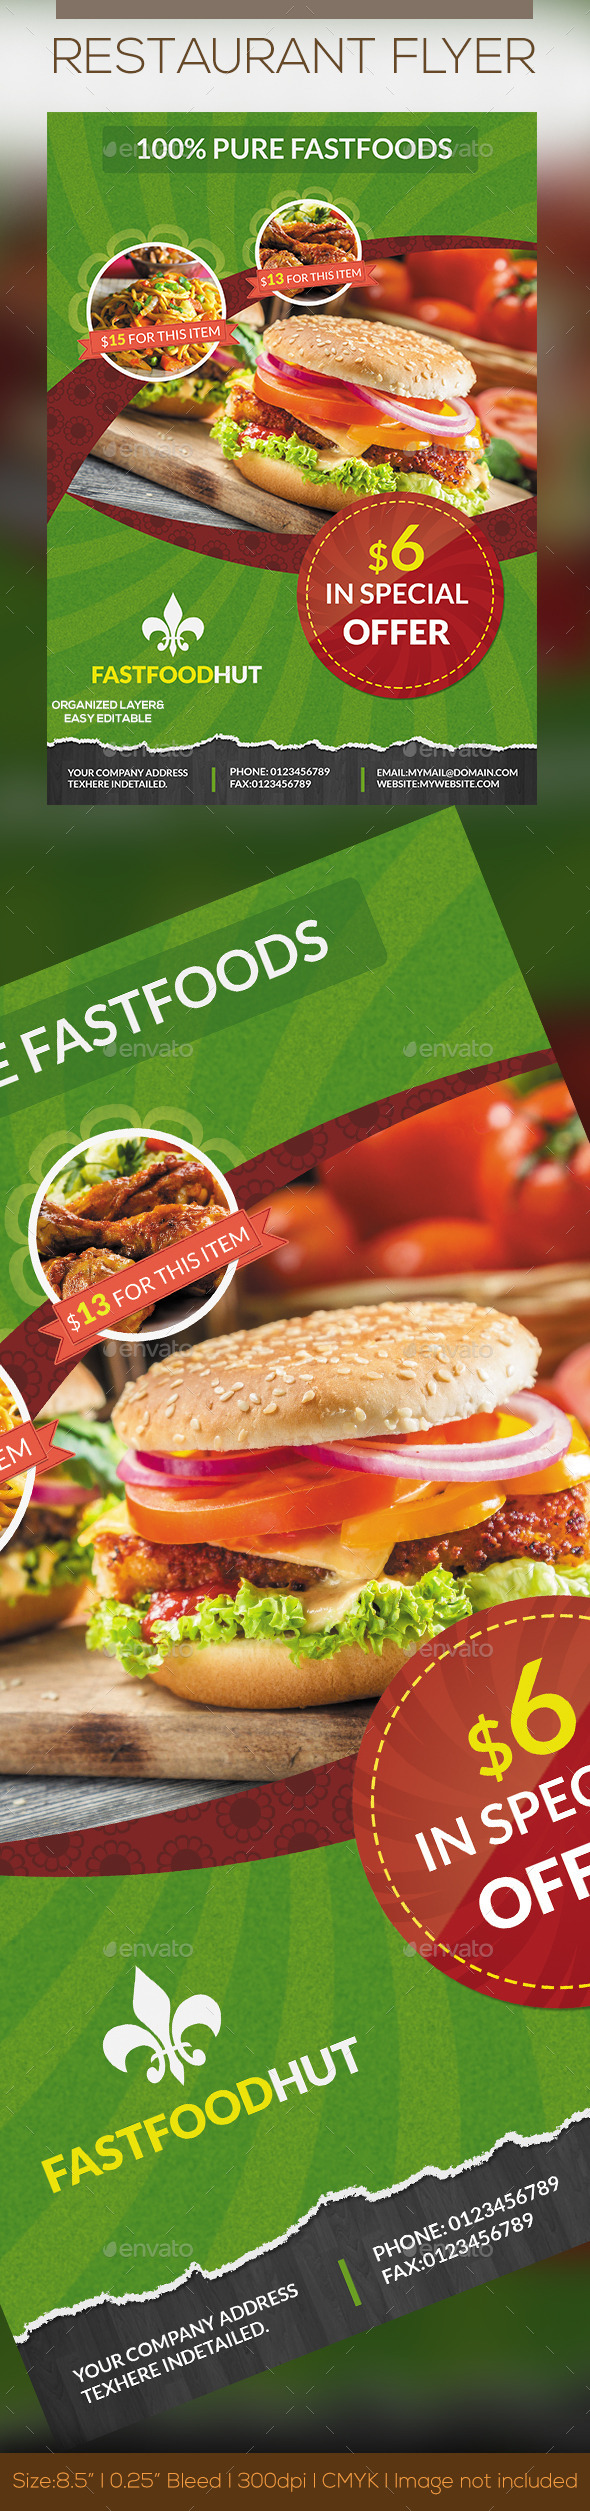 Foods Flyer - Restaurant Flyers